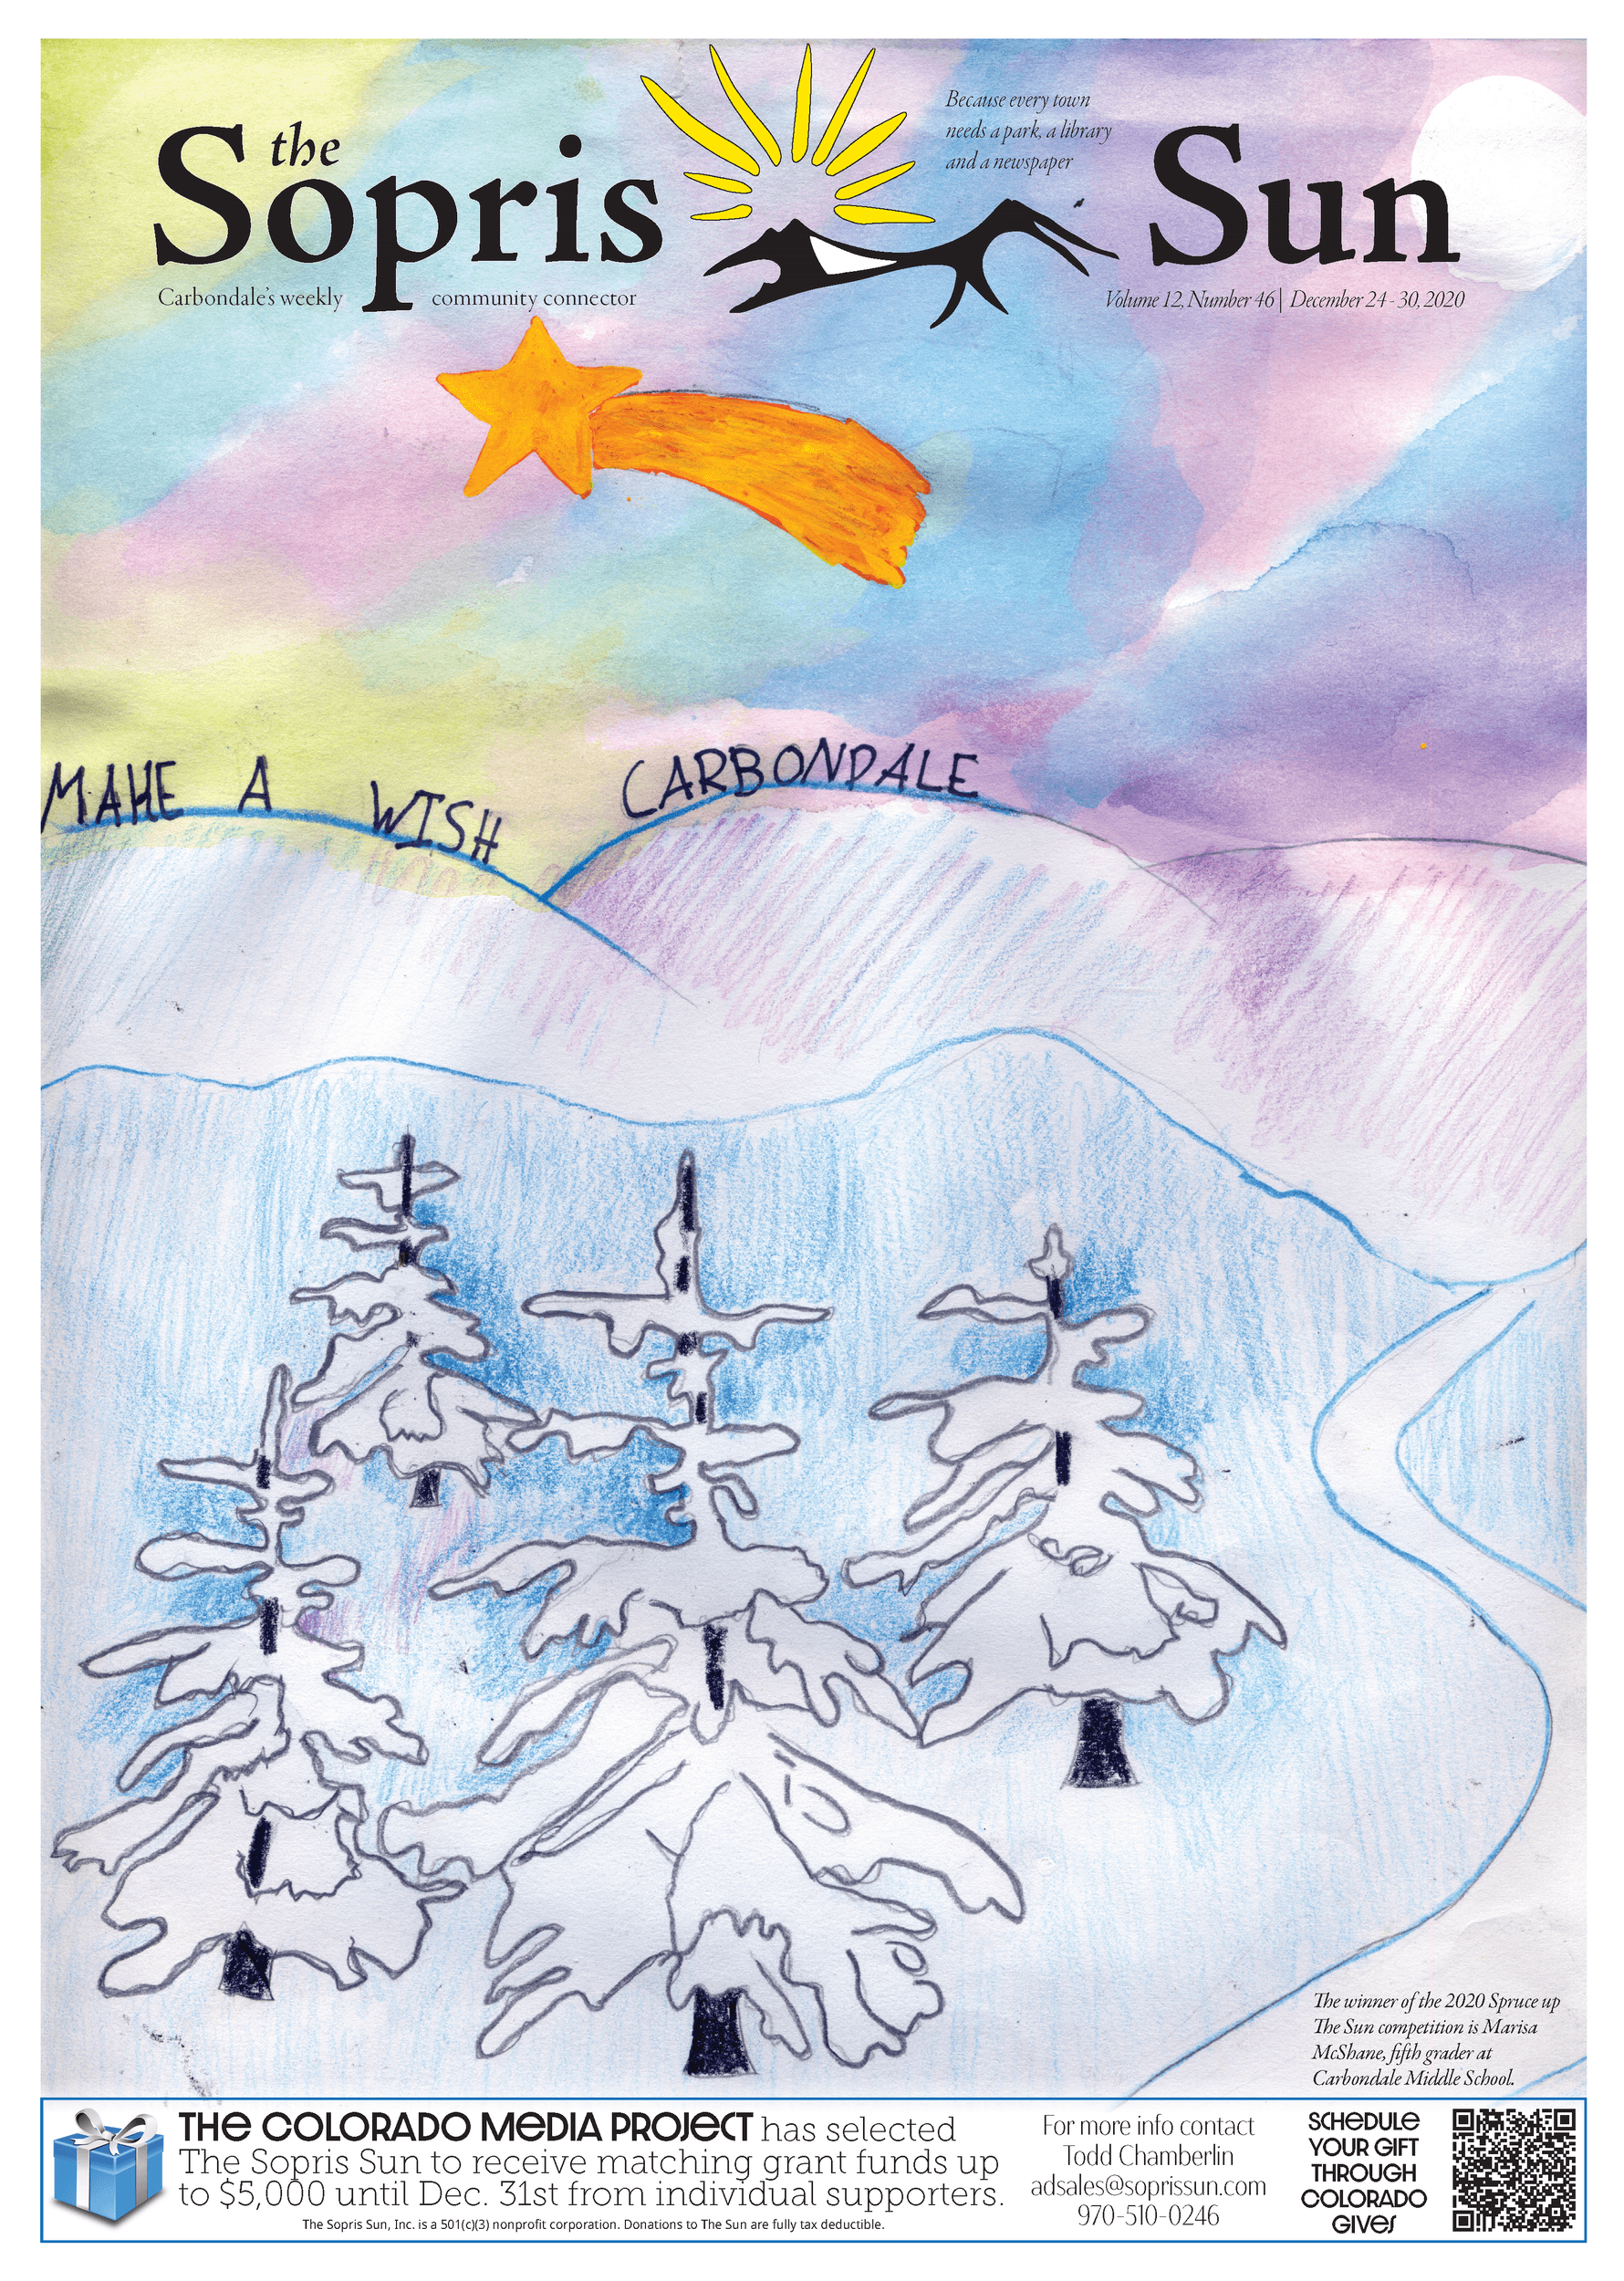 The winner of the 2020 Spruce up The Sun competition is Marisa McShane, fifth grader at Carbondale Middle School.